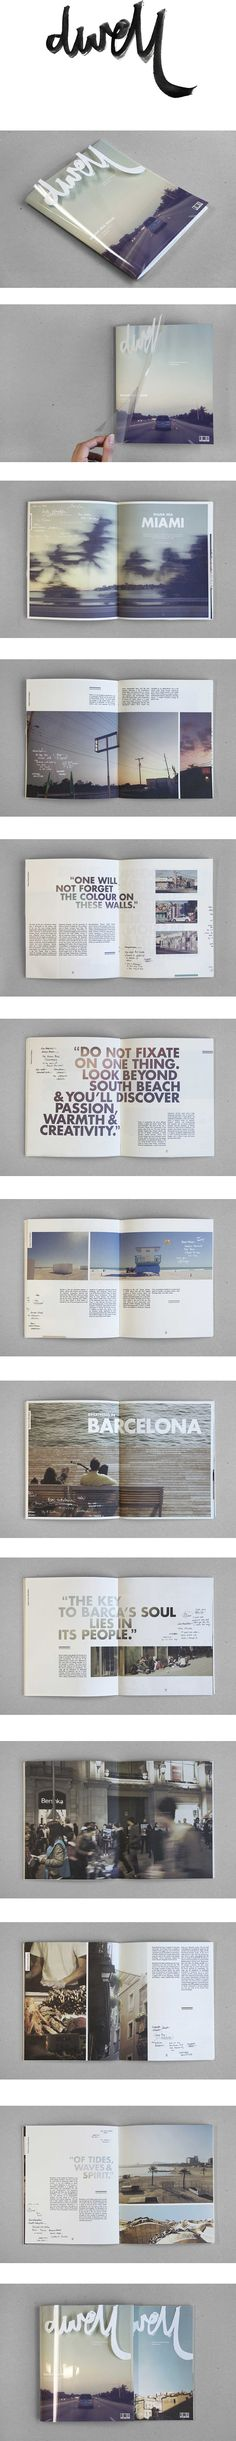 Dwell - Coastal Cities Revisited. > Yi Xiang Lim.